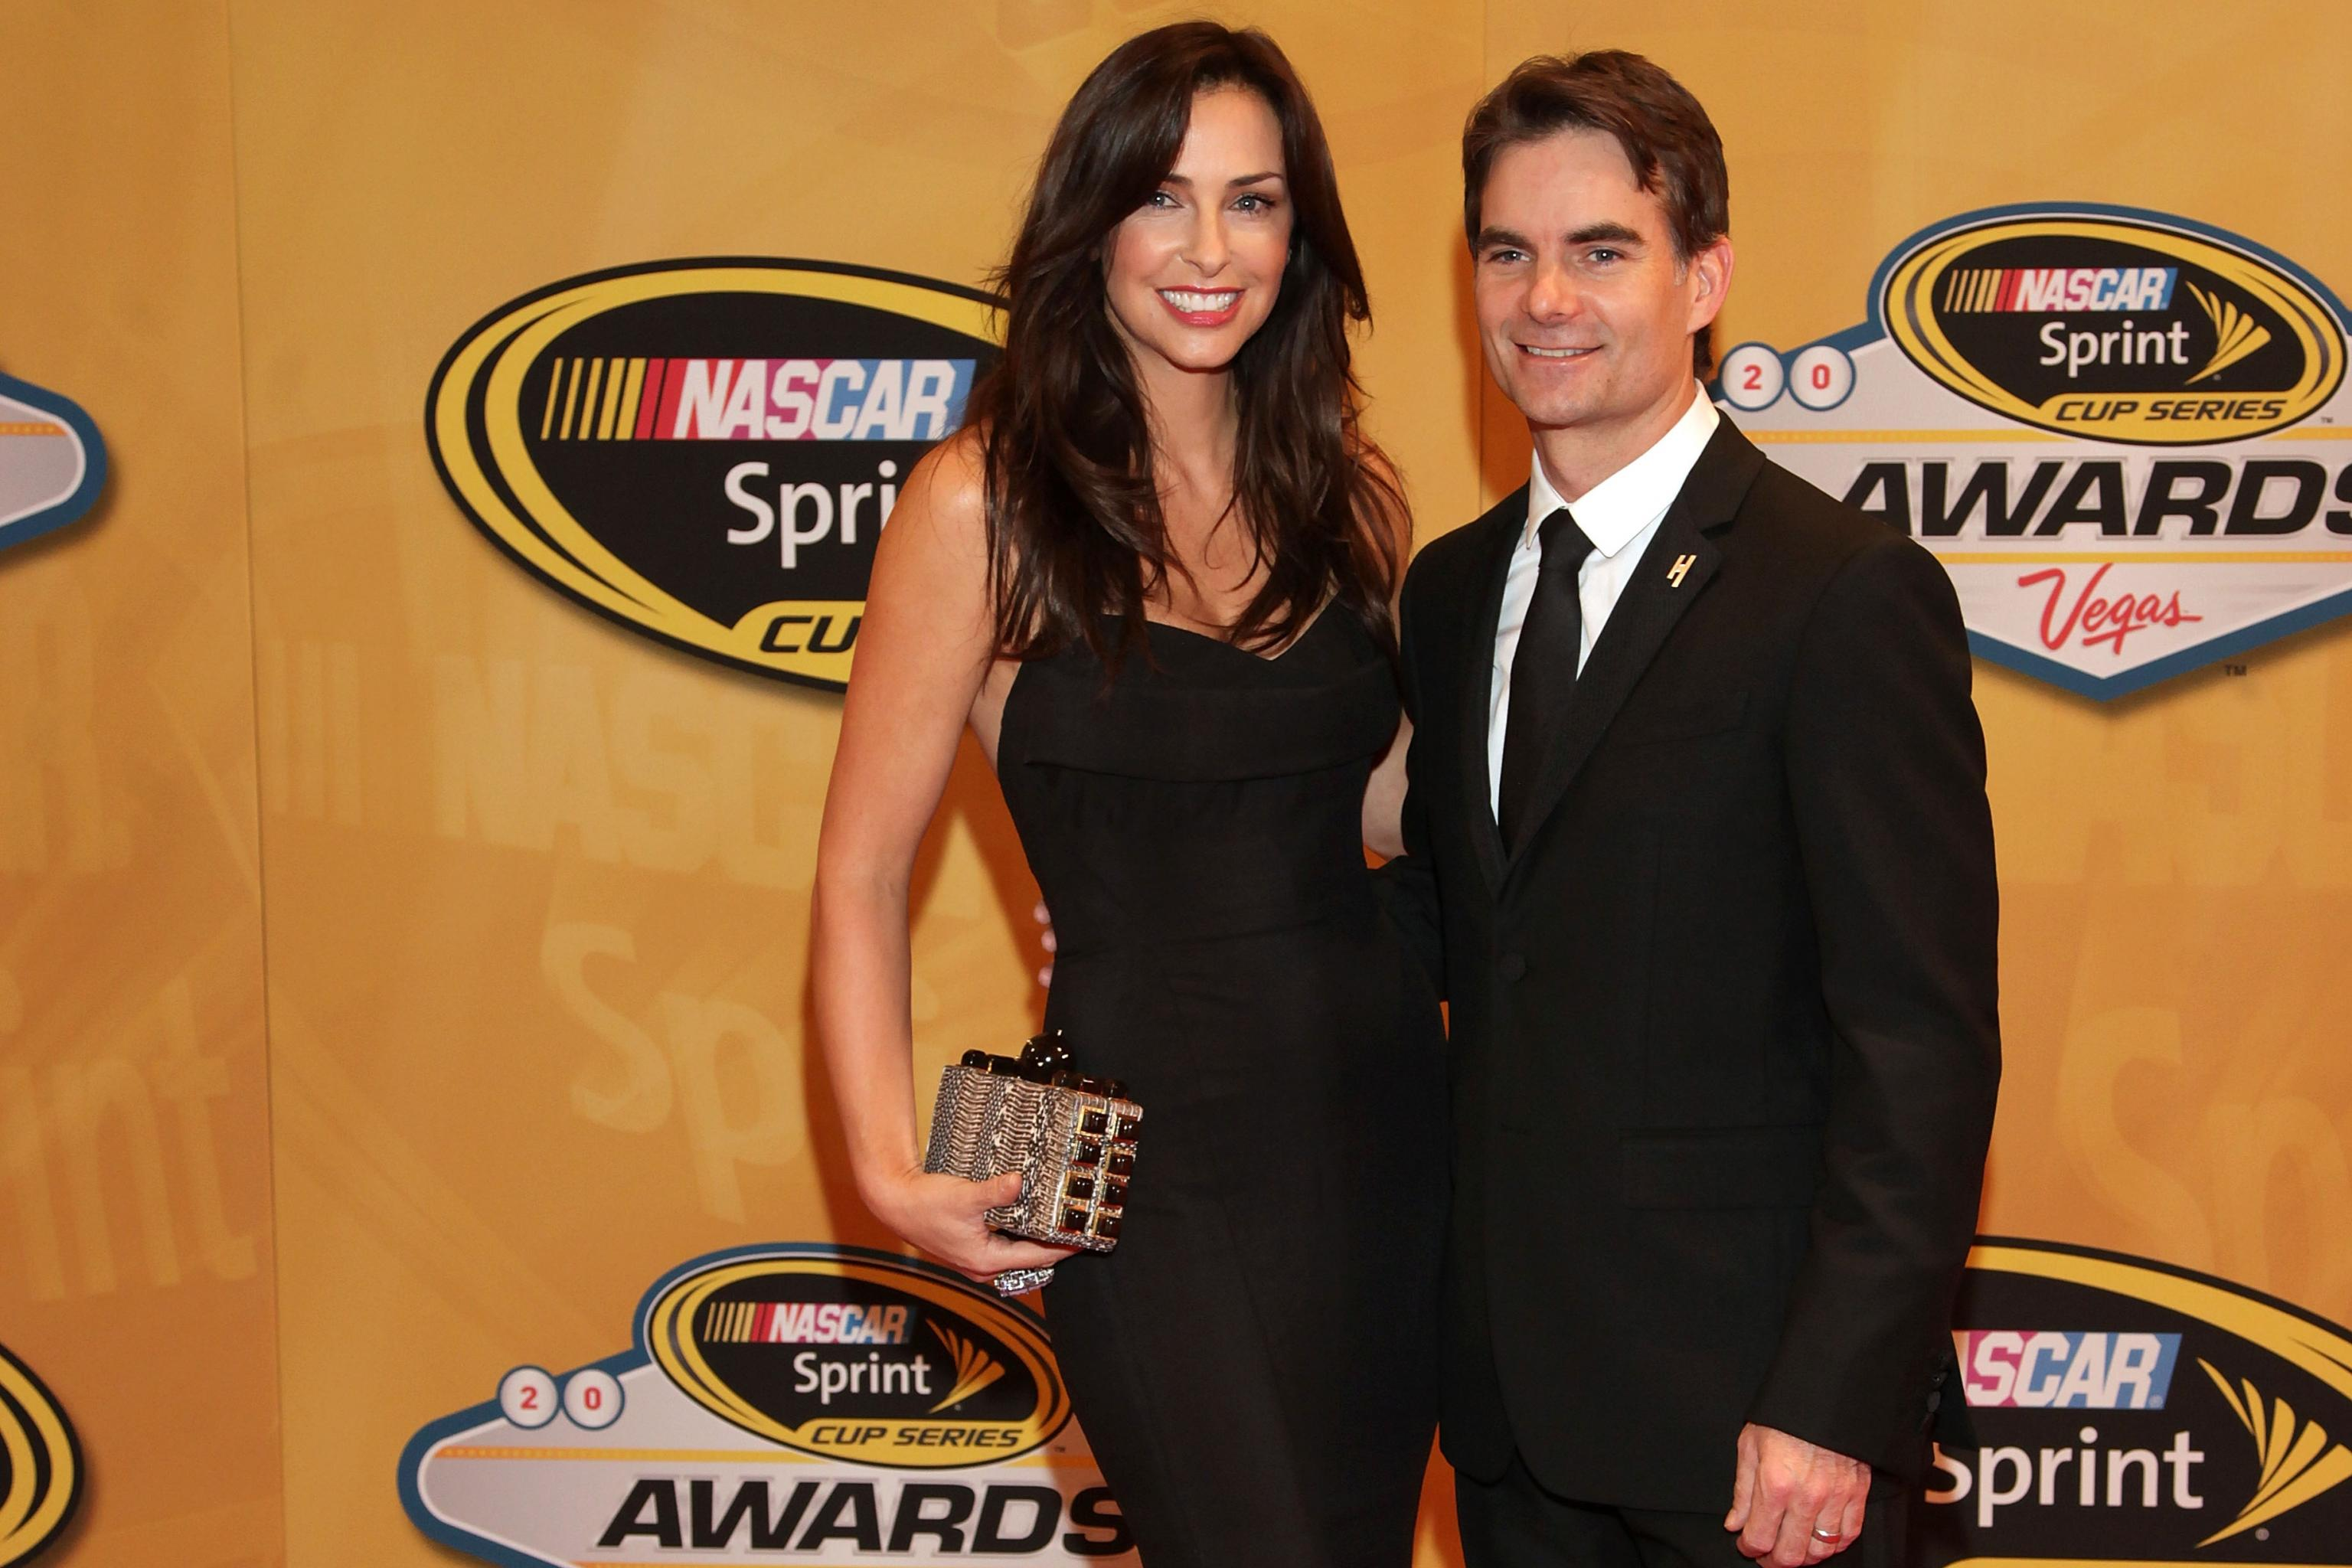 Jeff Gordon S Wife Pictures Of Beautiful Model Ingrid Vandebosch Bleacher Report Latest News Videos And Highlights